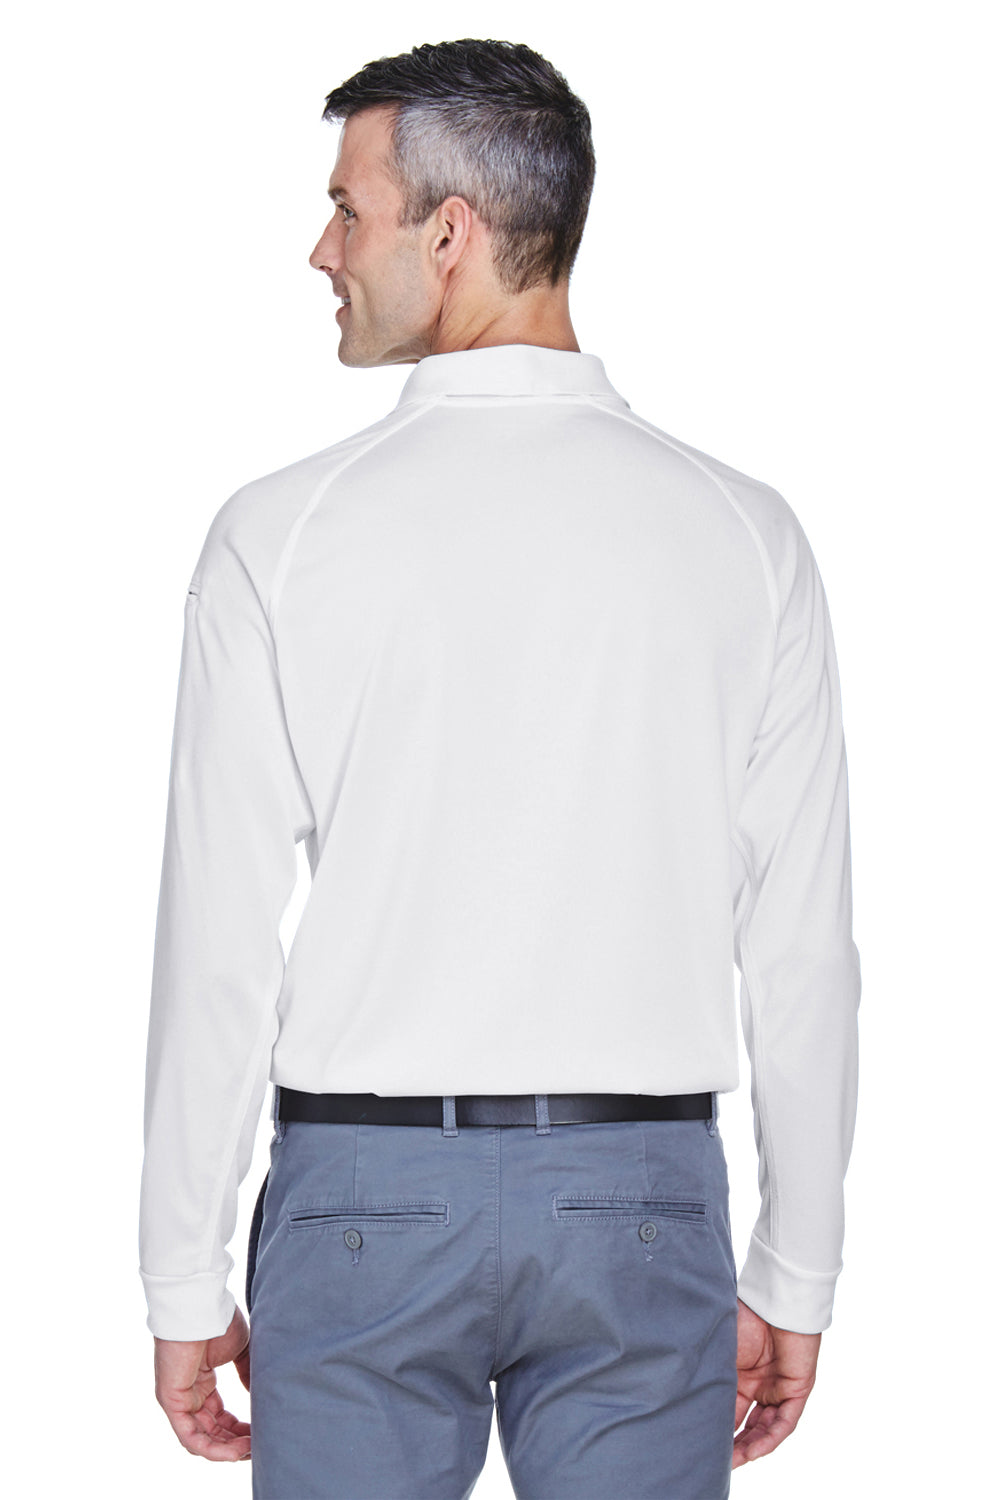 Harriton M211L Mens Advantage Tactical Moisture Wicking Long Sleeve Polo Shirt White Back